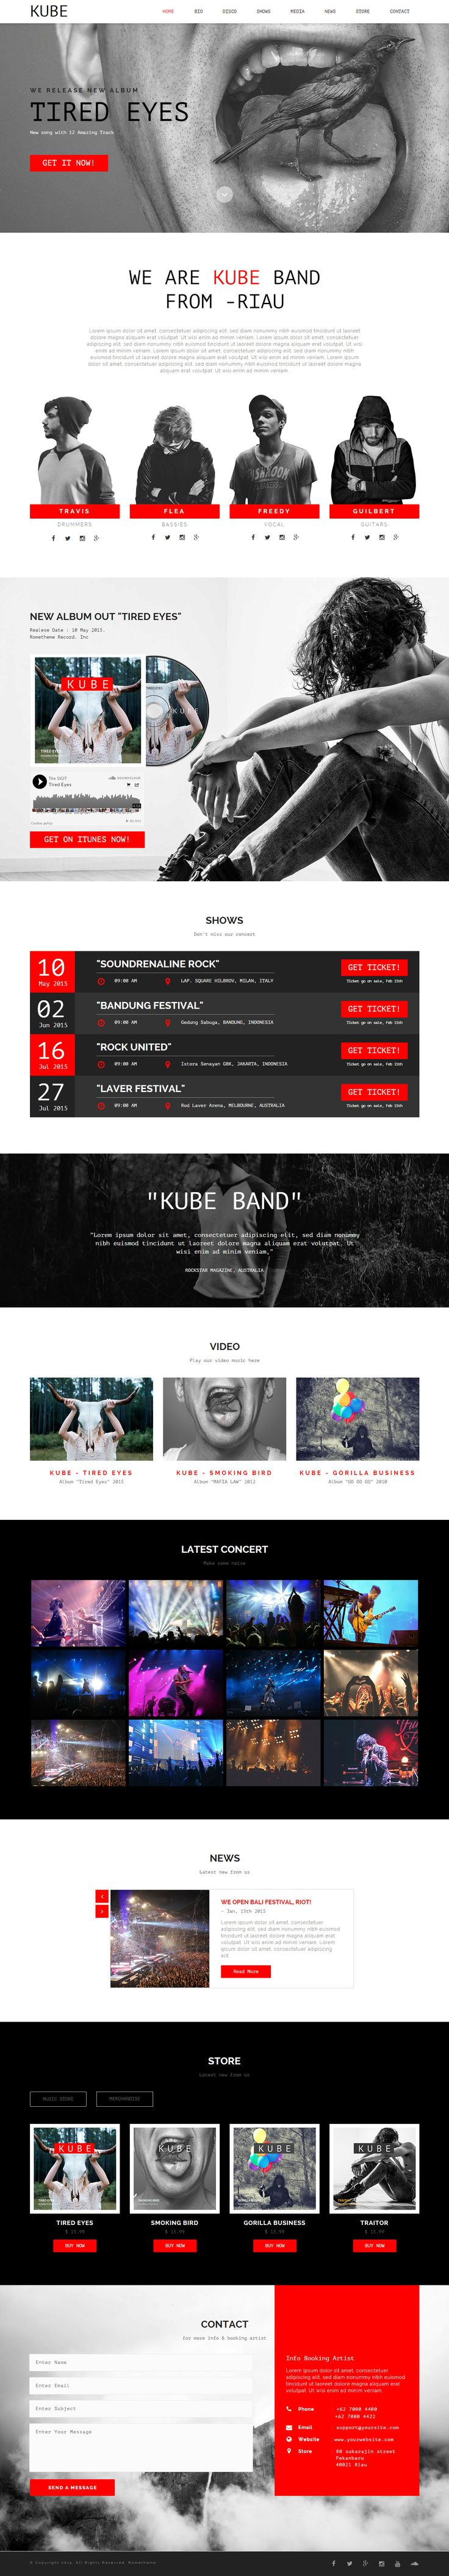 Kube - Musician, DJ, Band, Music #AdobeMuse #Template. Available on #Themeforest…